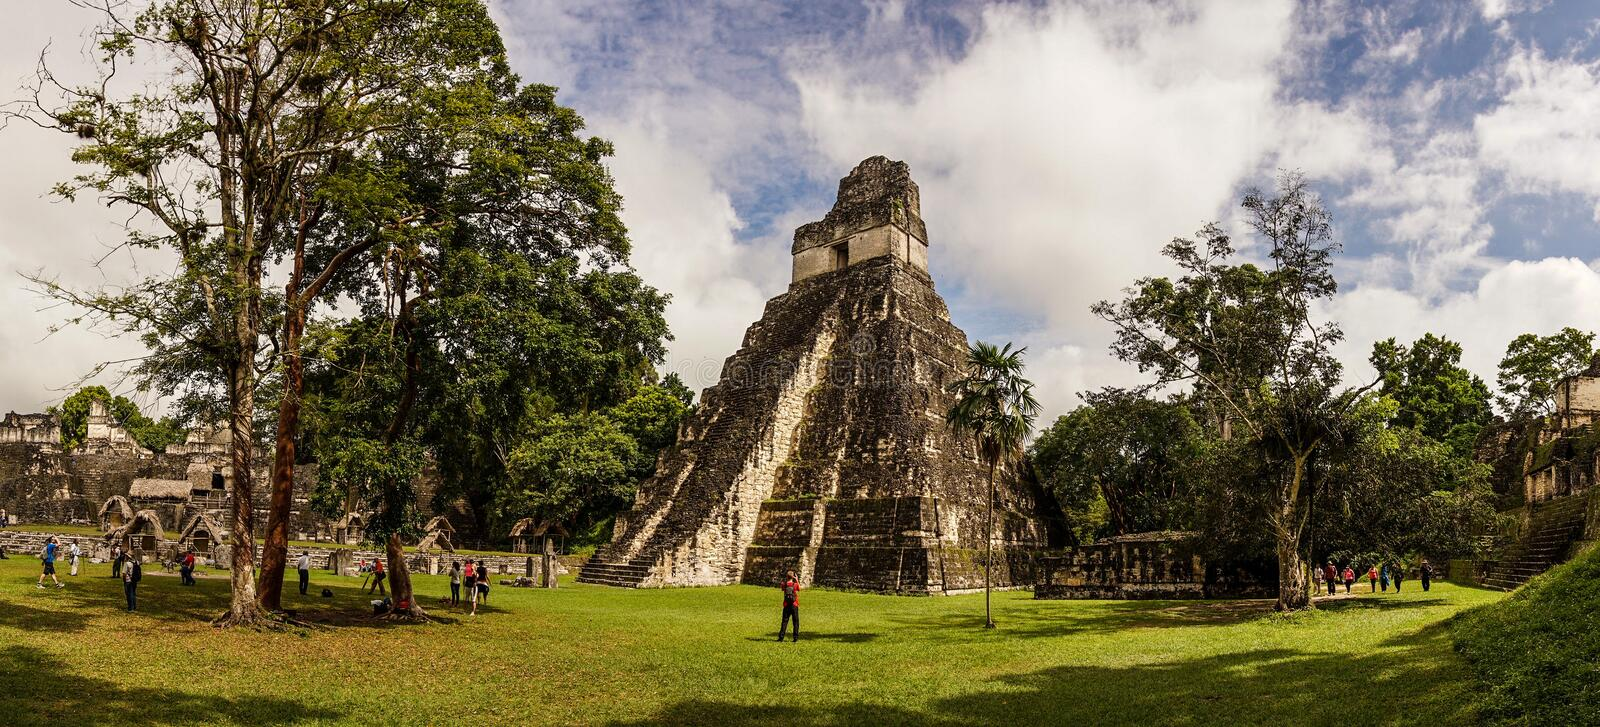 Jaguar Temple stock photo. Image of america, mayan ...